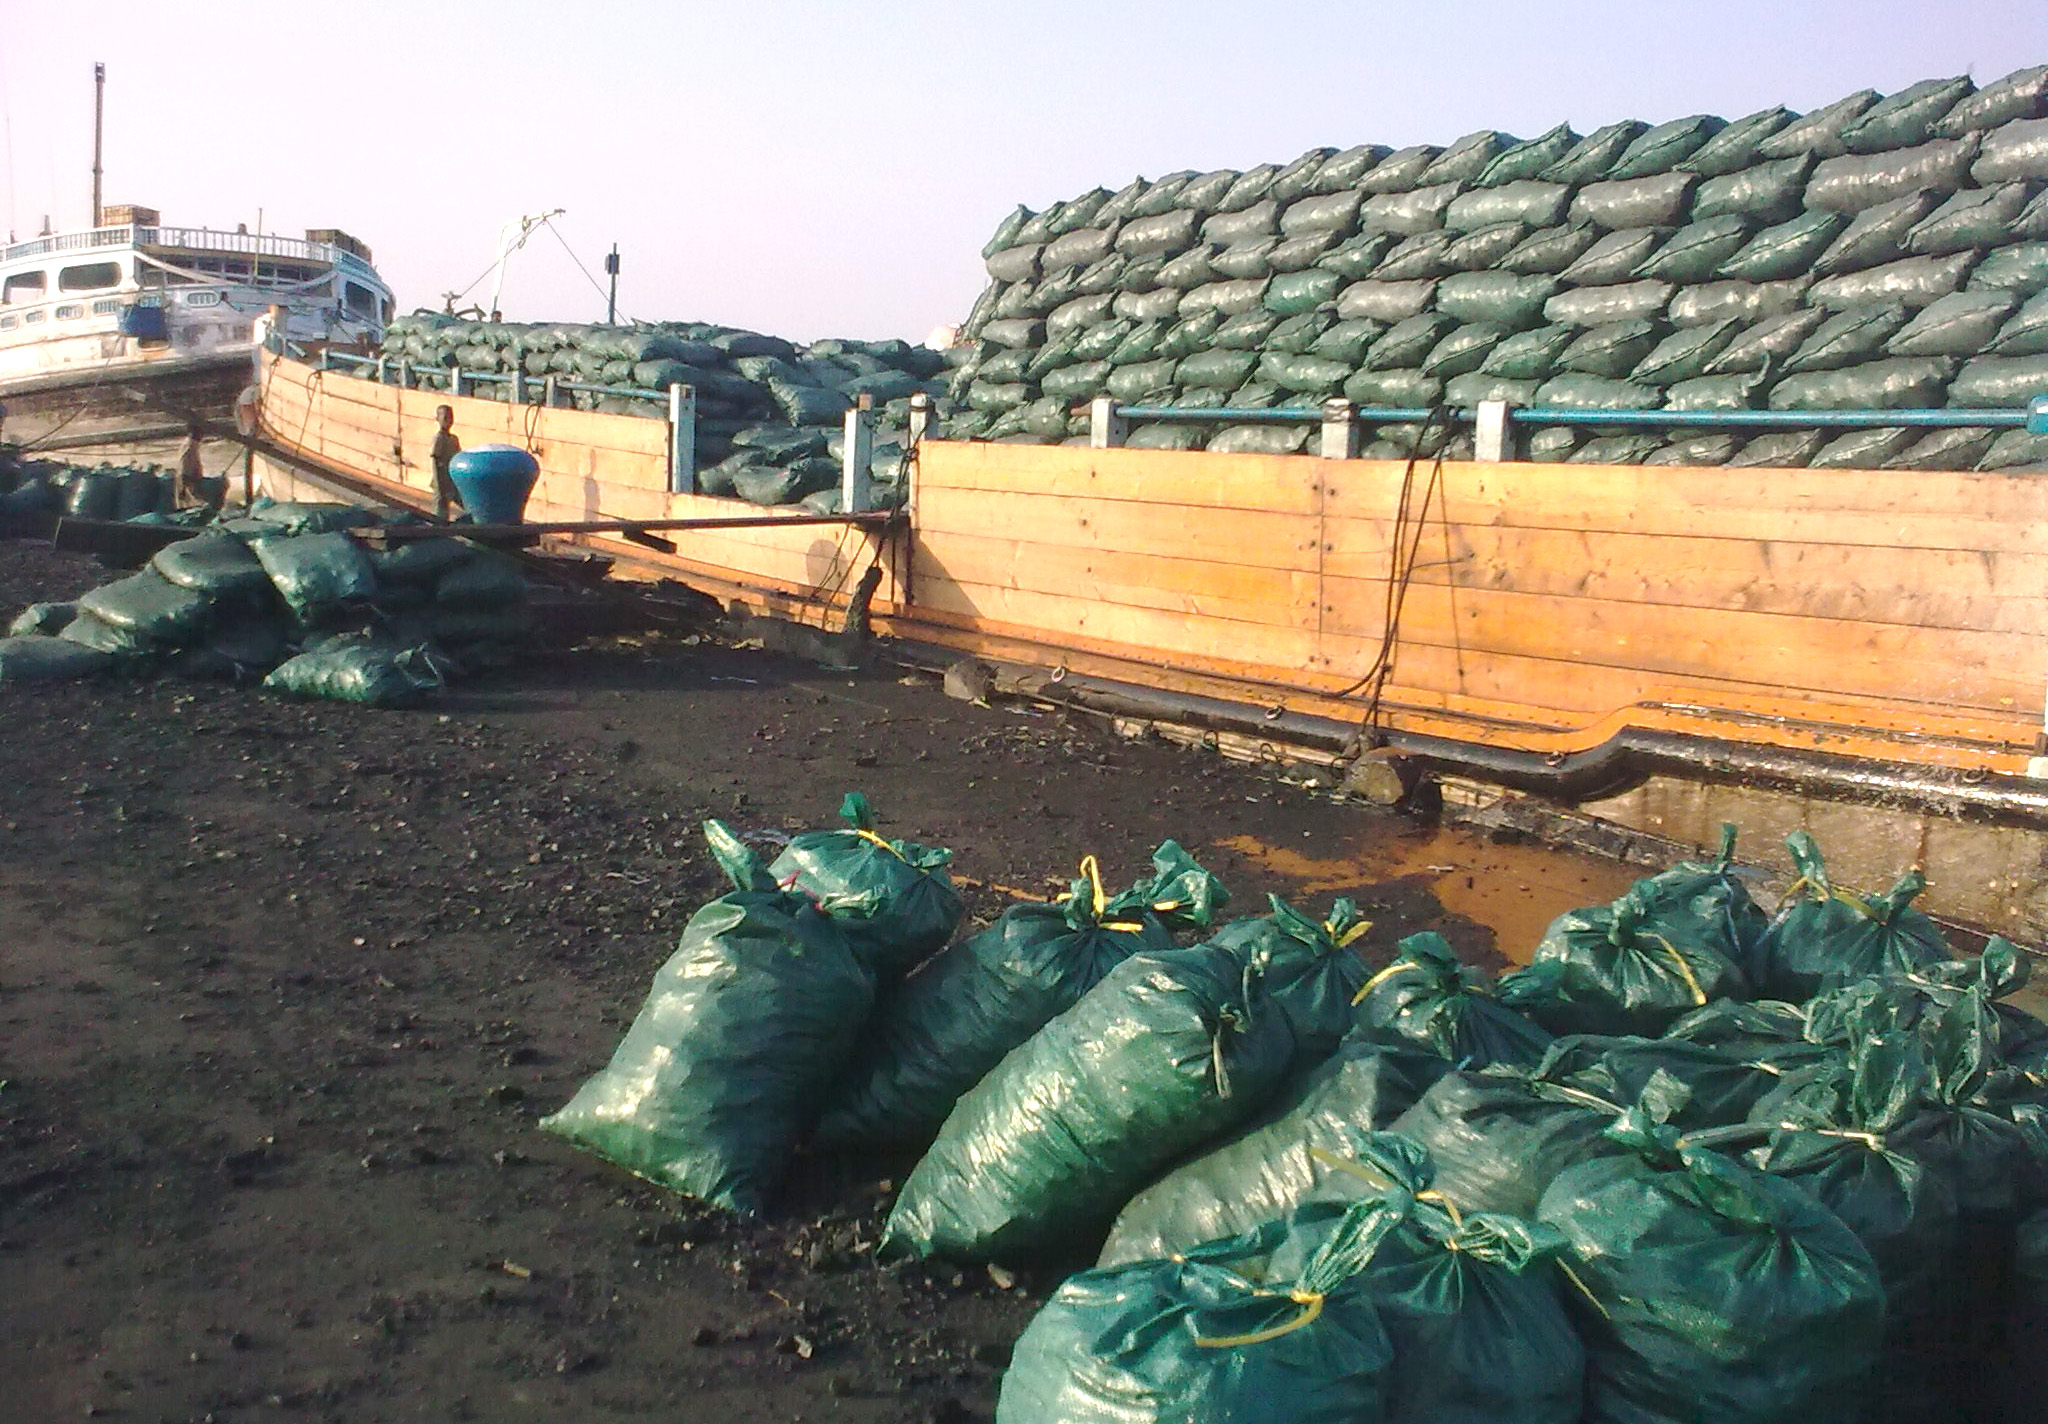 Charcoal being loaded on to a ship in the southern port city of Kismayo, Somalia. The charcoal trade is booming amid severe drought in Somalia